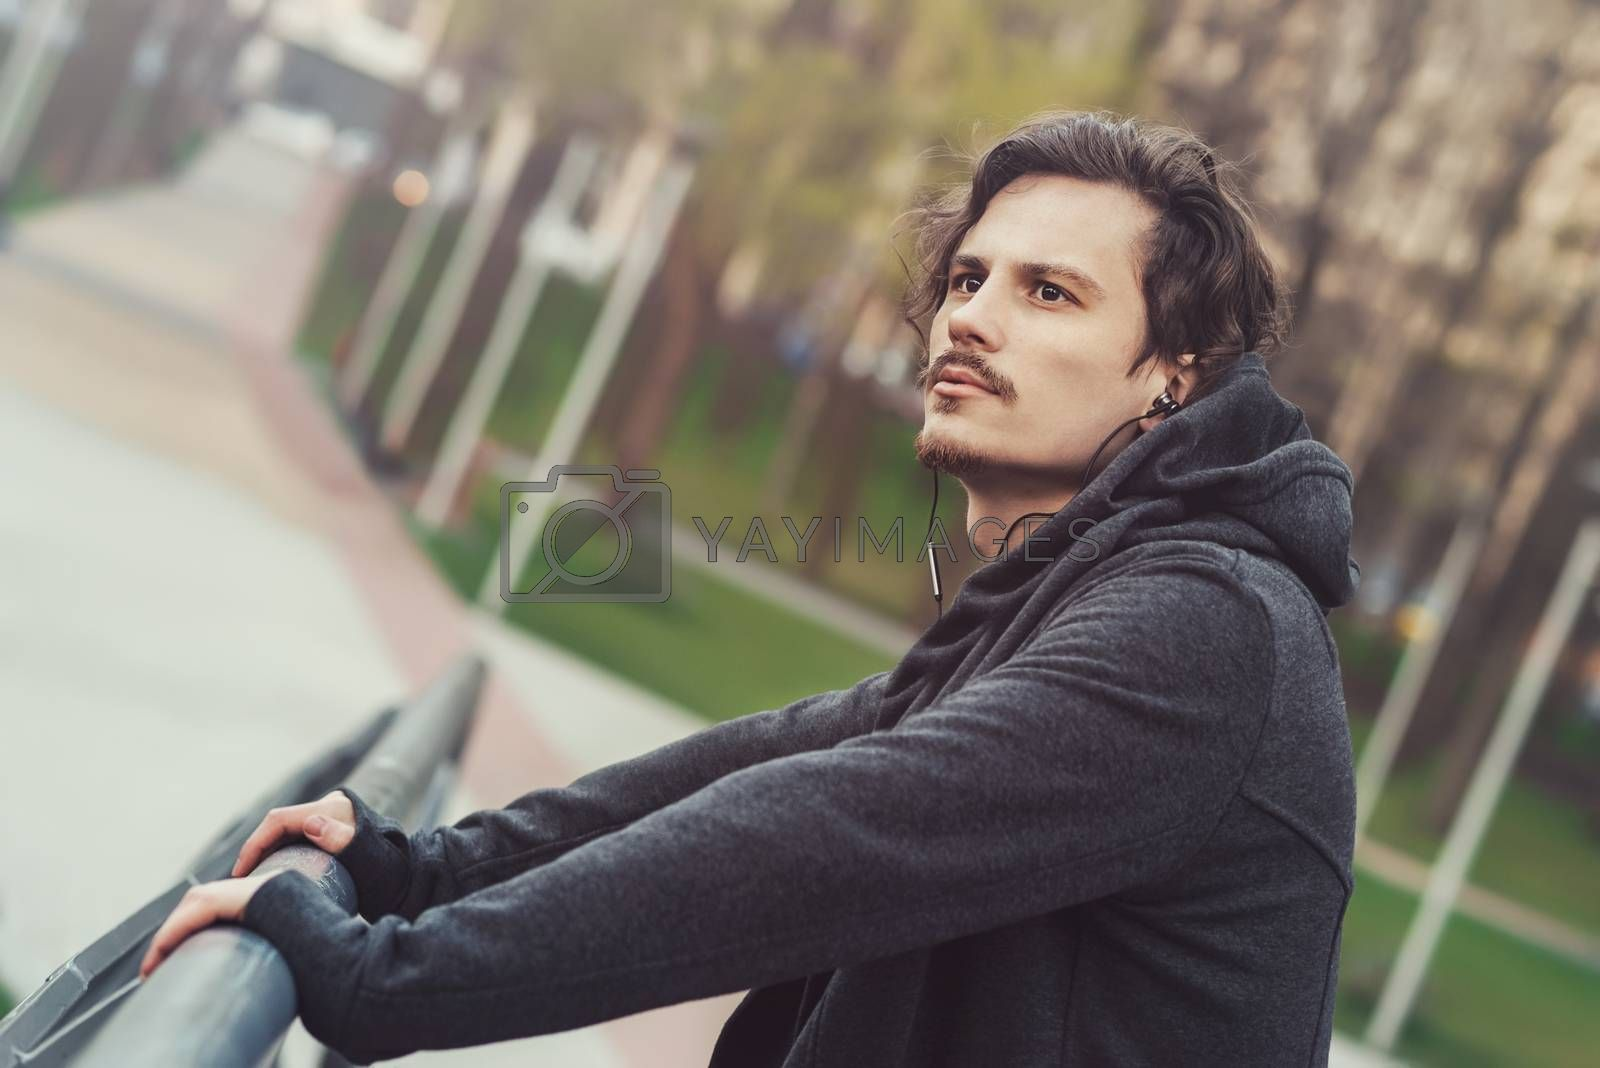 Royalty free image of Portrait of a young man in headphones. walk to spring Park. by Nickstock